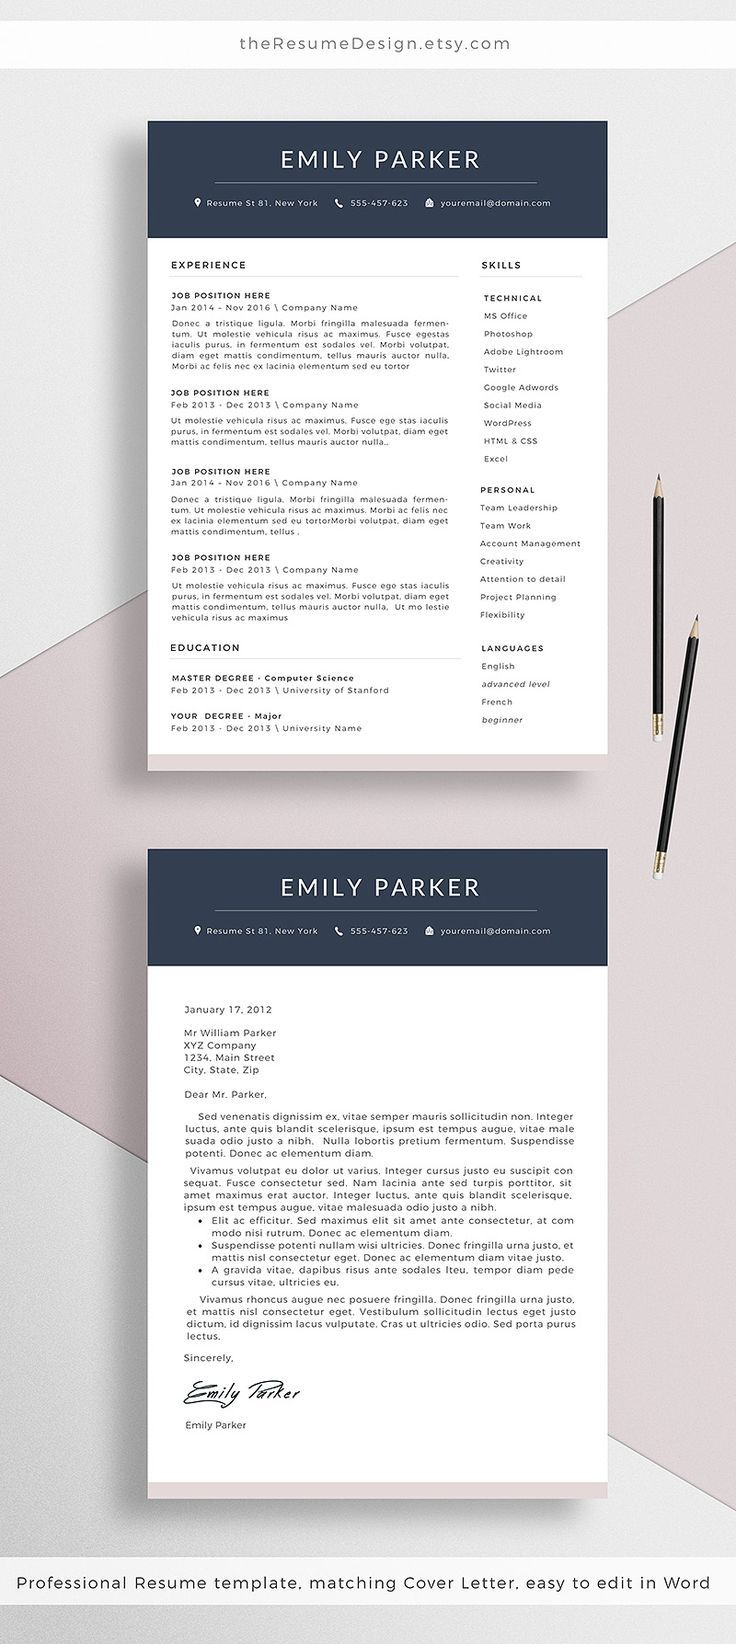 Top Tips For Designing The Perfect Resume Resume Tips Resume Template Professional Creative Cv Resume Template